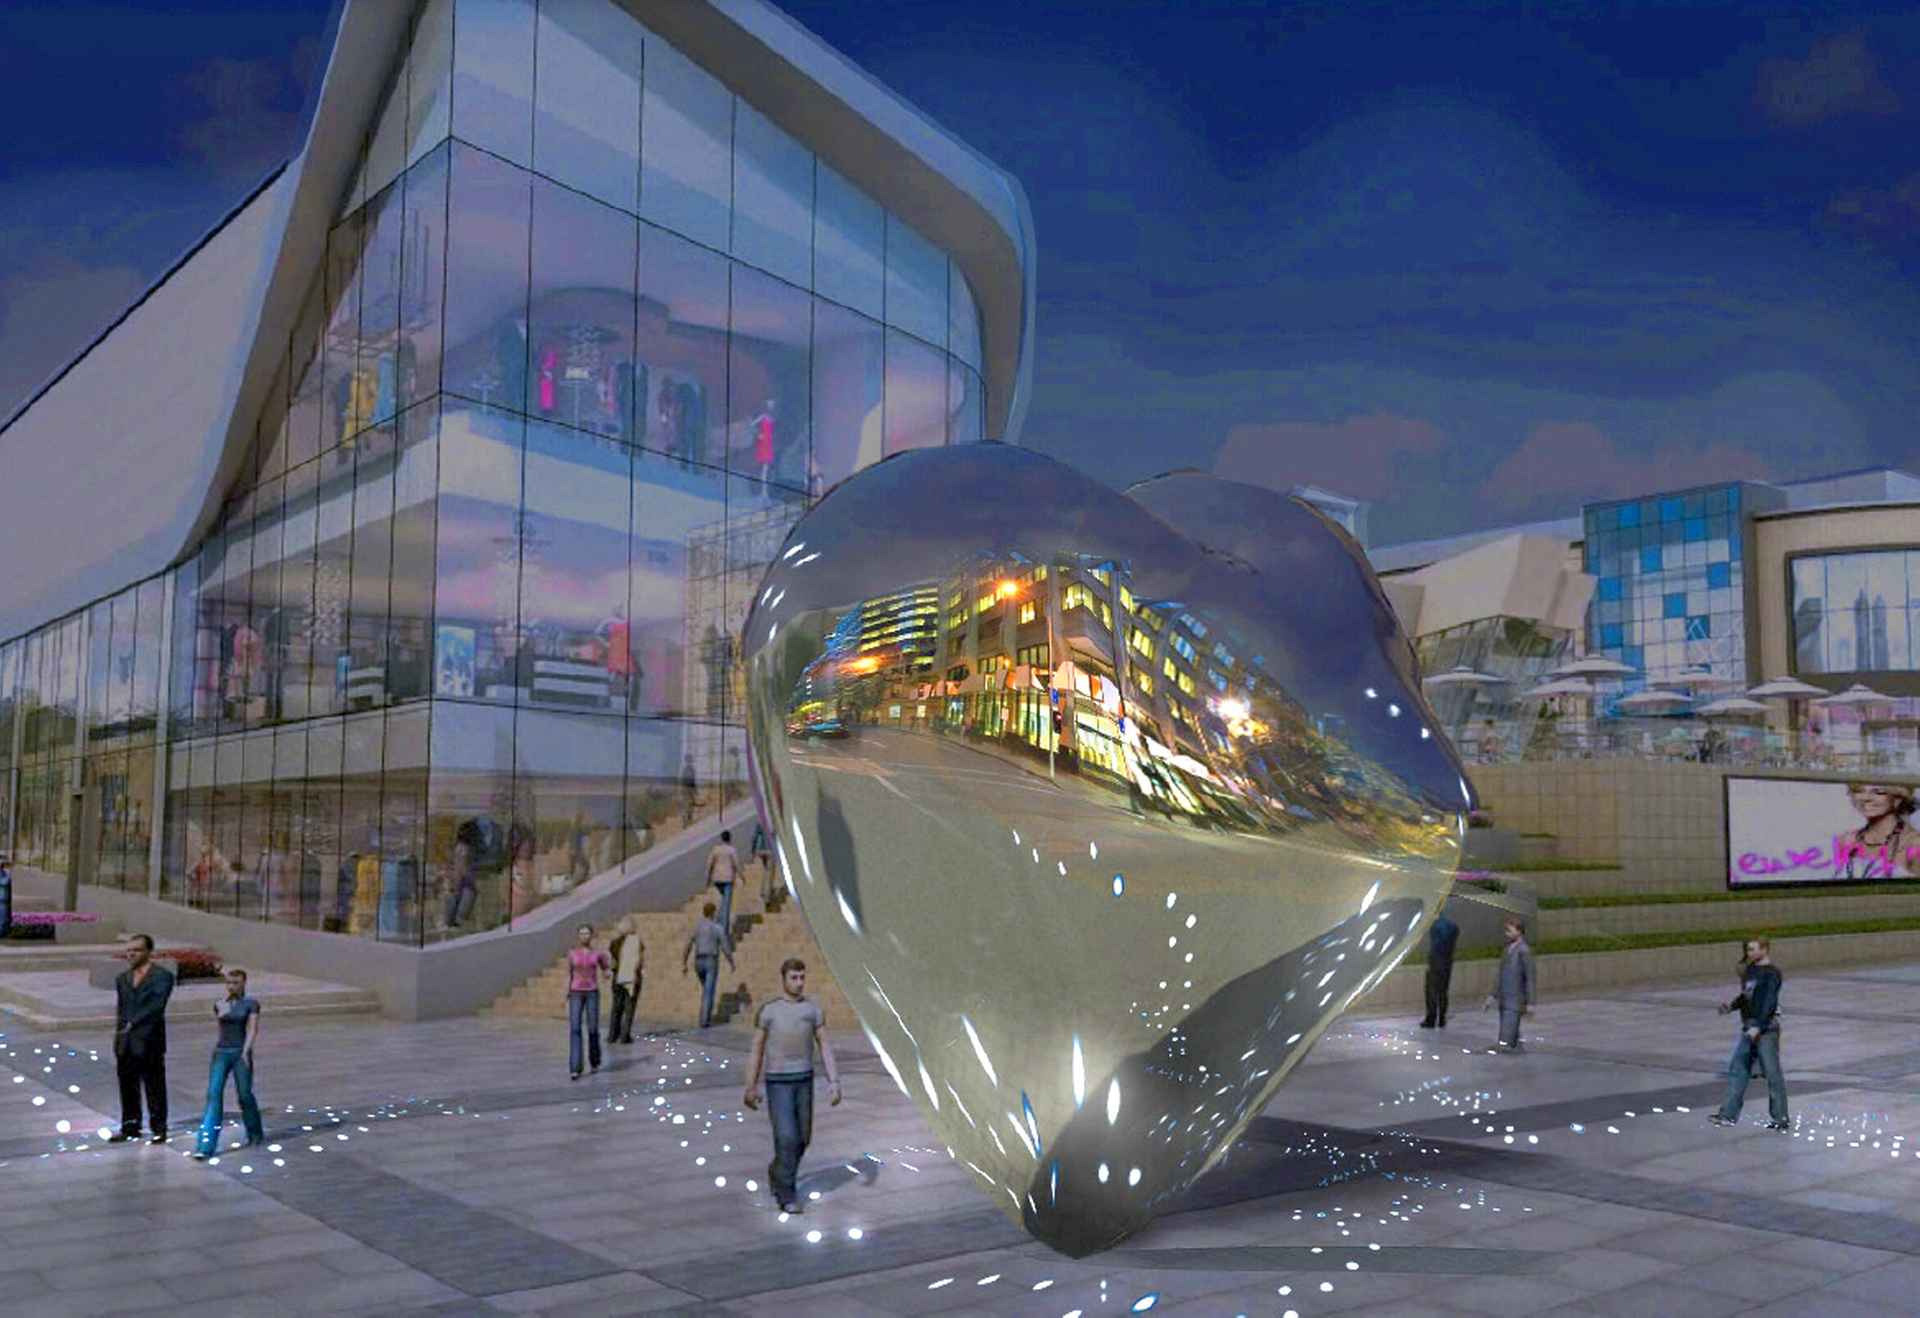 Lighting installation proposal 1 by Dostyk Plaza, Kazakhstan